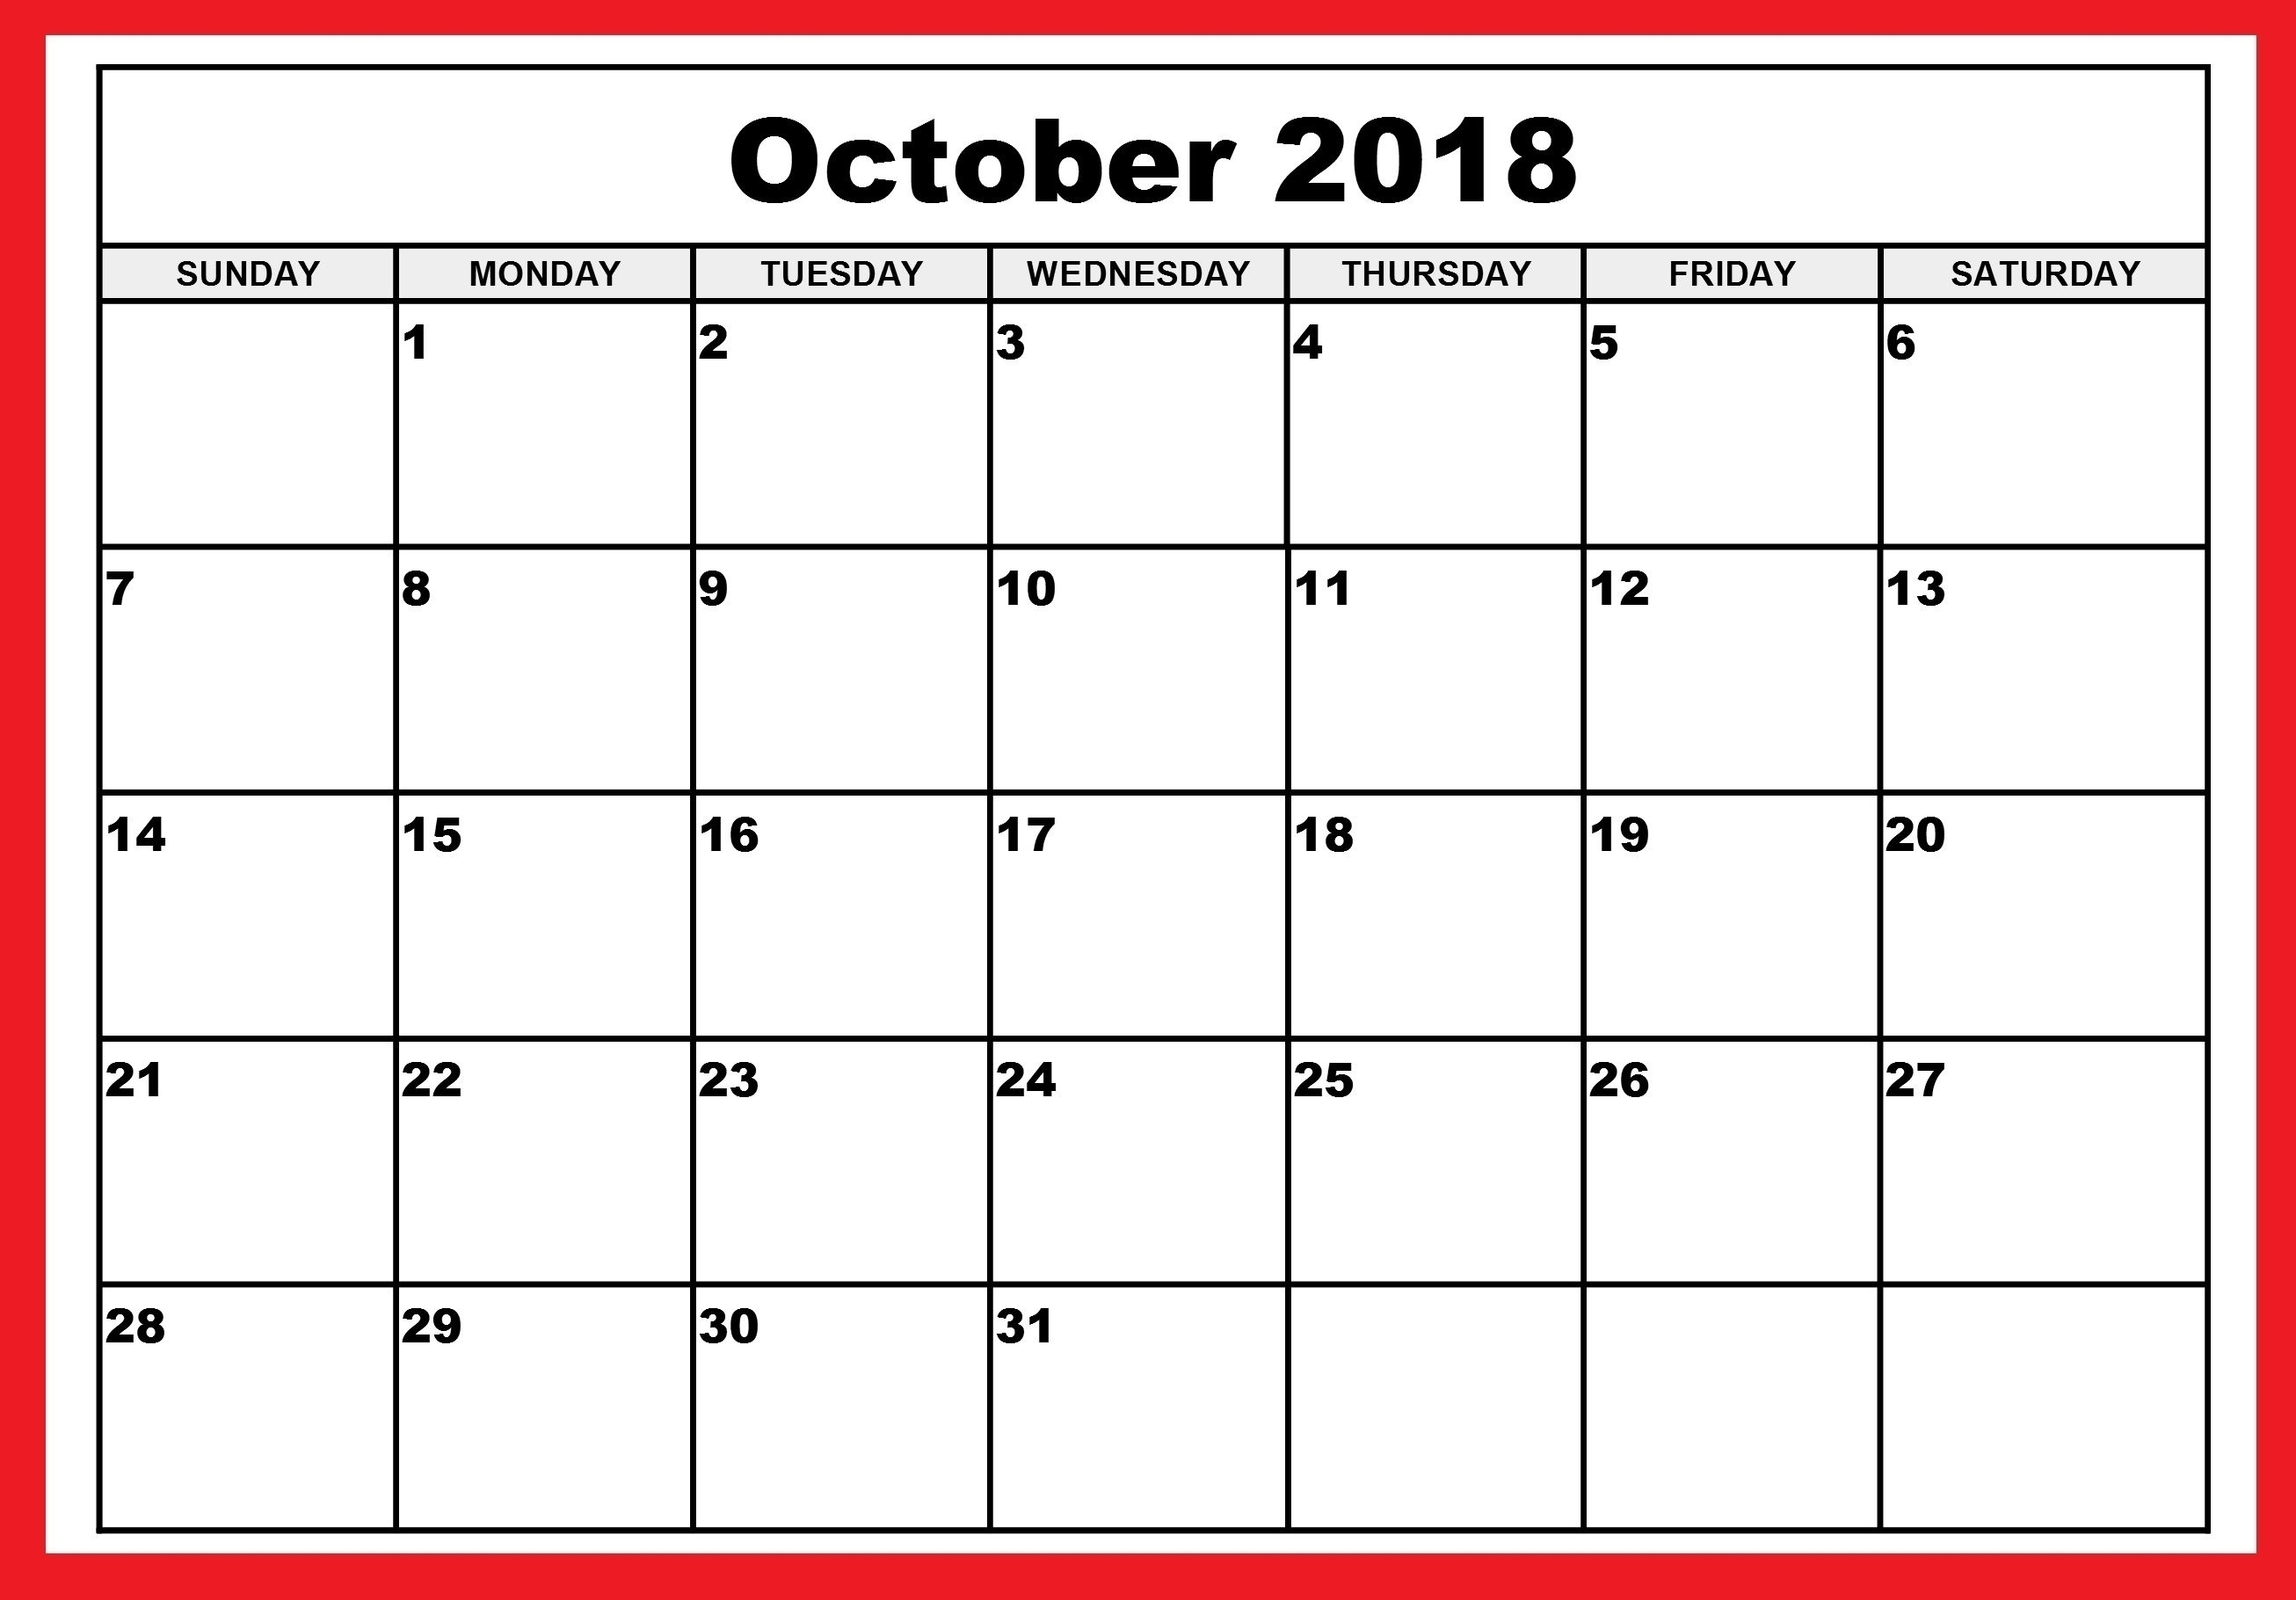 October Blank Calendar Monday To Friday Only | Template Calendar in October Blank Calendar Monday To Friday Only